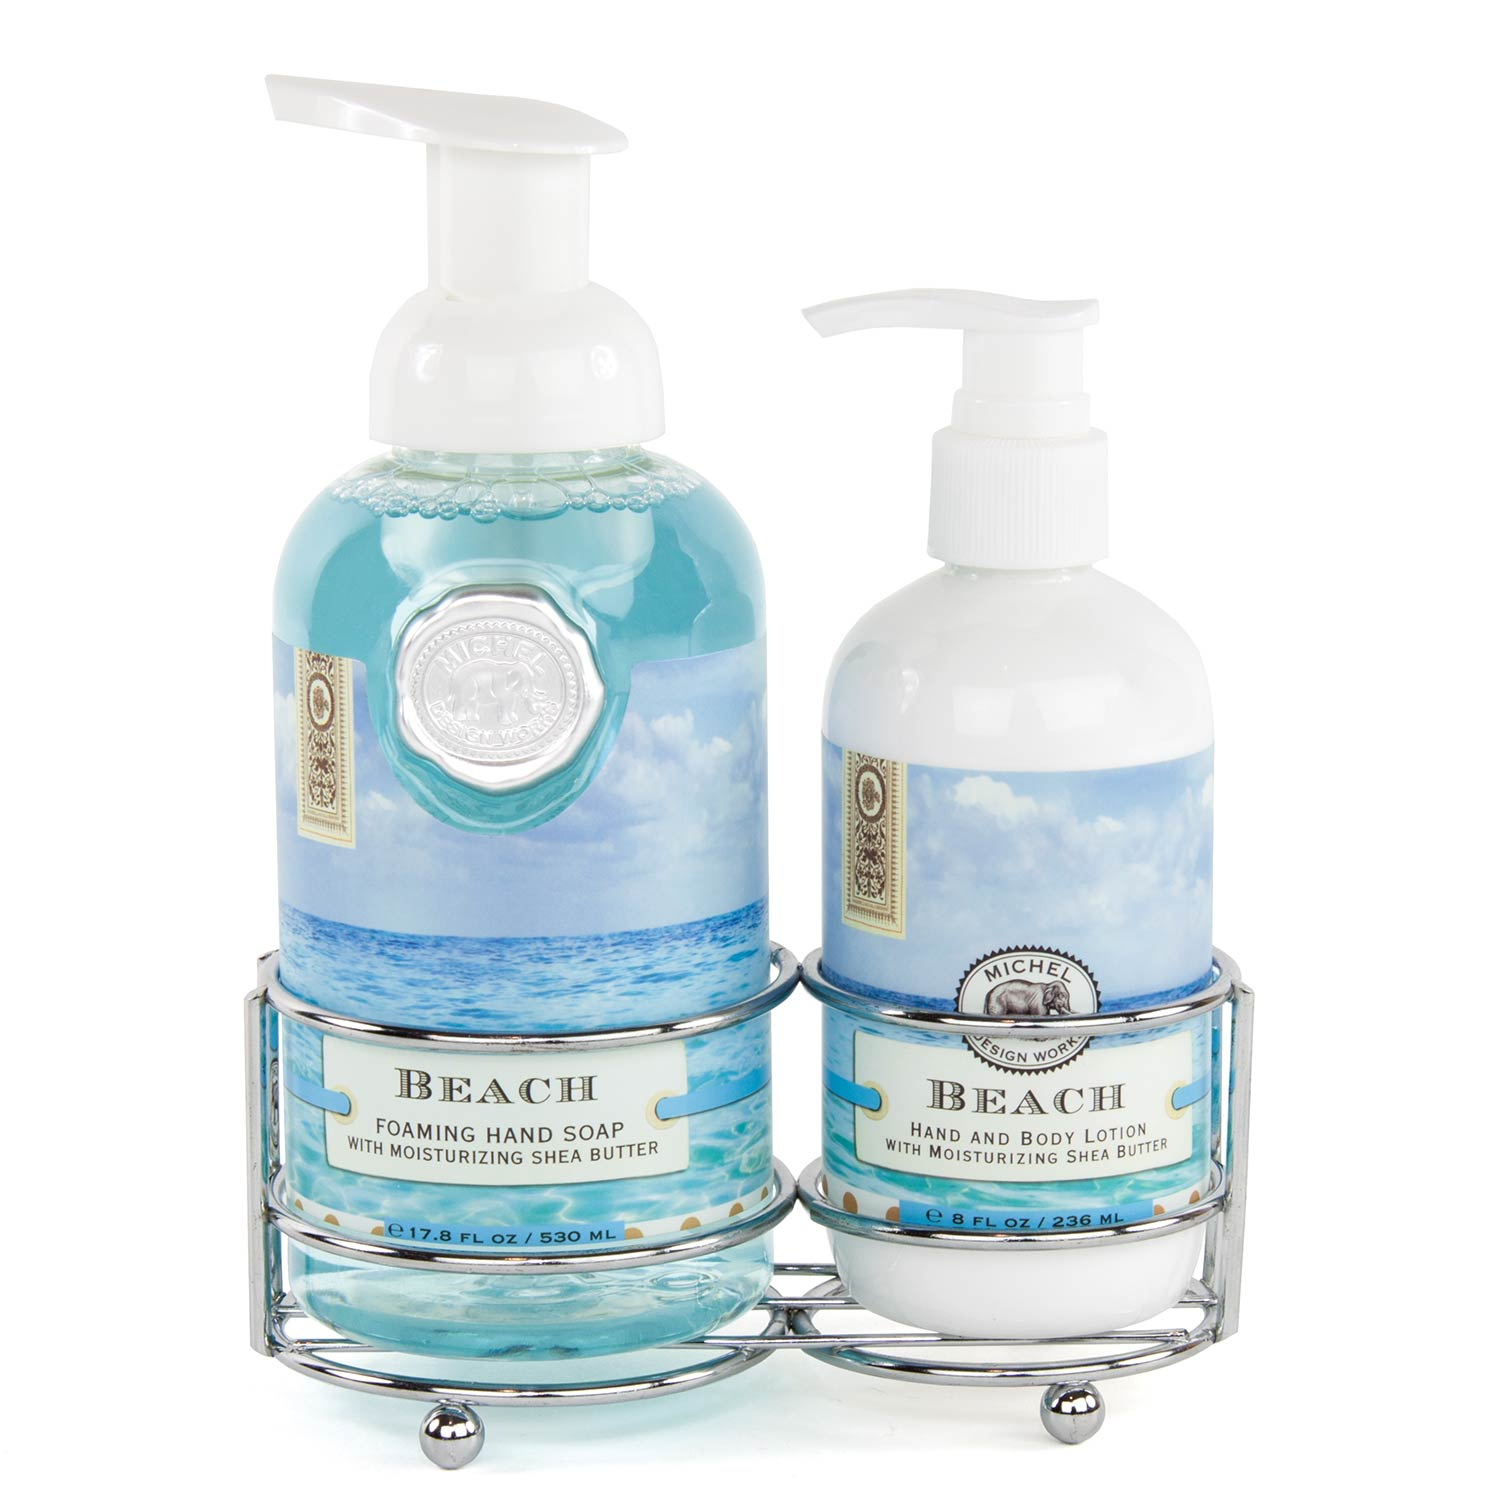 Beach brings compelling marine notes with hints of bergamot, amber, and watermelon. Our silver-toned handcare caddy includes our popular foaming hand soap and rich hand and body lotion together in one convenient holder. Foamin Hand Soap: 17.8 fl. oz. /530 ml liquid. Lotion: 8 fl. oz. /236 ml liquid. Fragrance: Compelling marine notes with hints of bergamot, amber, and watermelon.